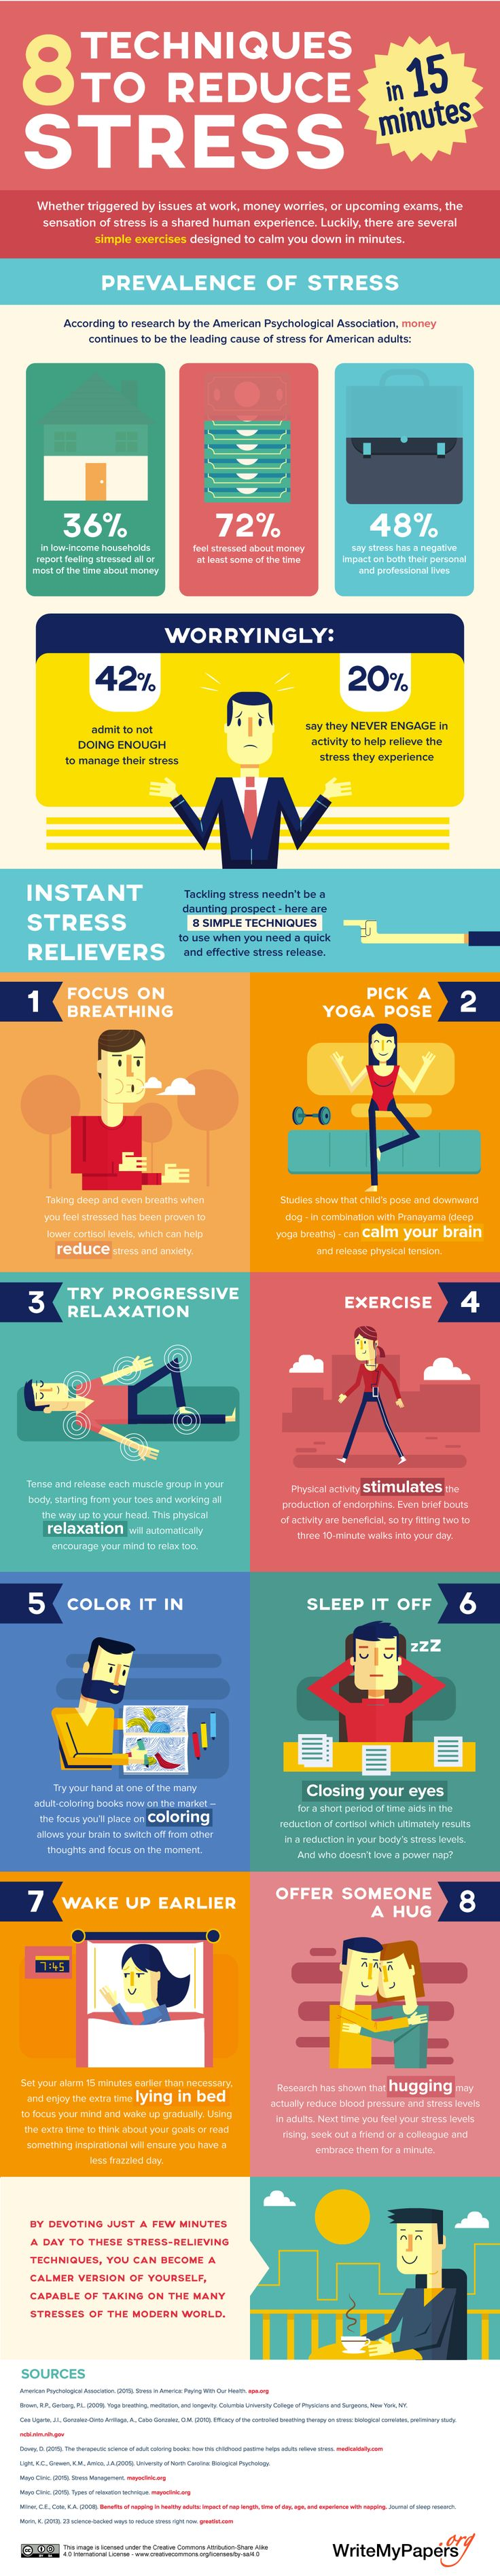 Top tips to staying stress free in the workplace infographic - 467 Best Life Hacks Productivity Gtd Images On Pinterest Productivity Infographics And Life Hacks